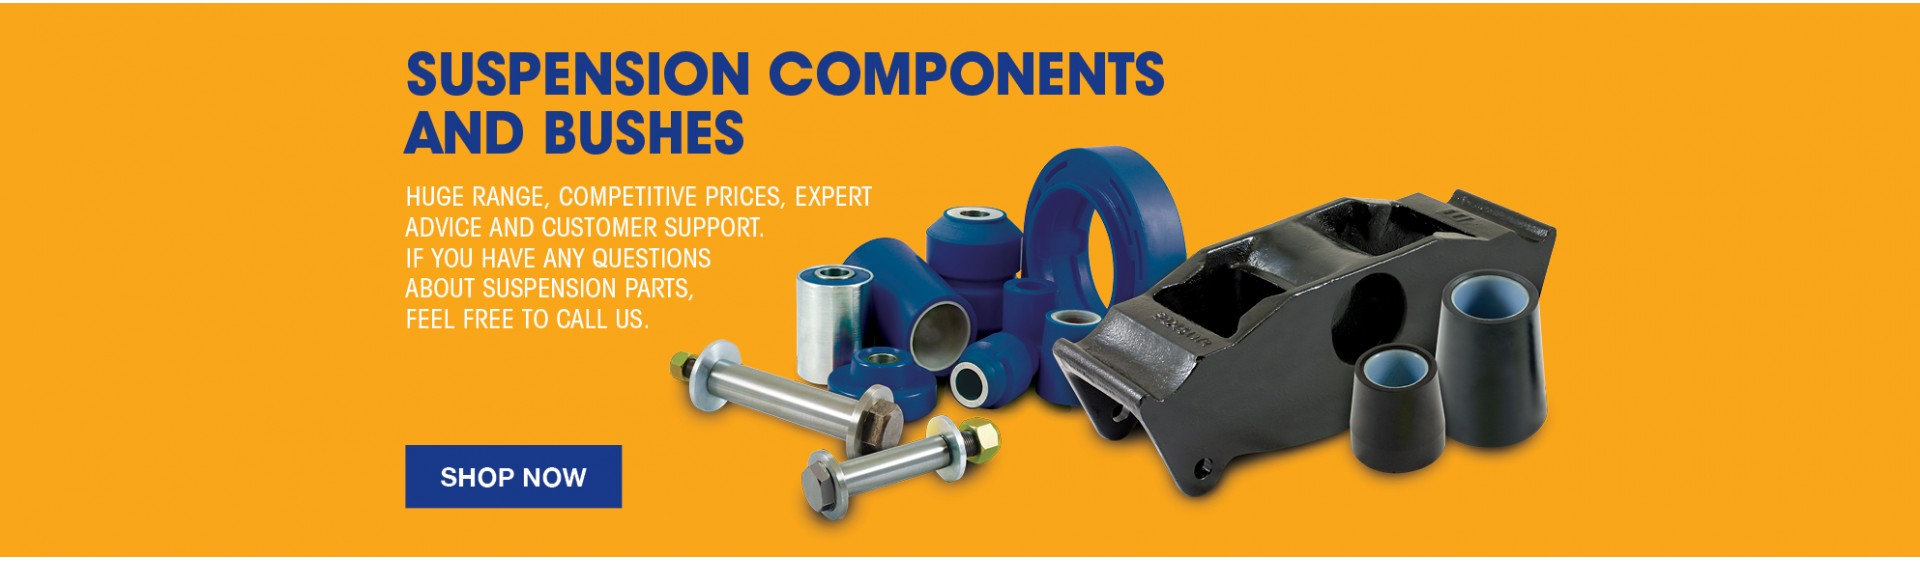 Suspension Components Bushes